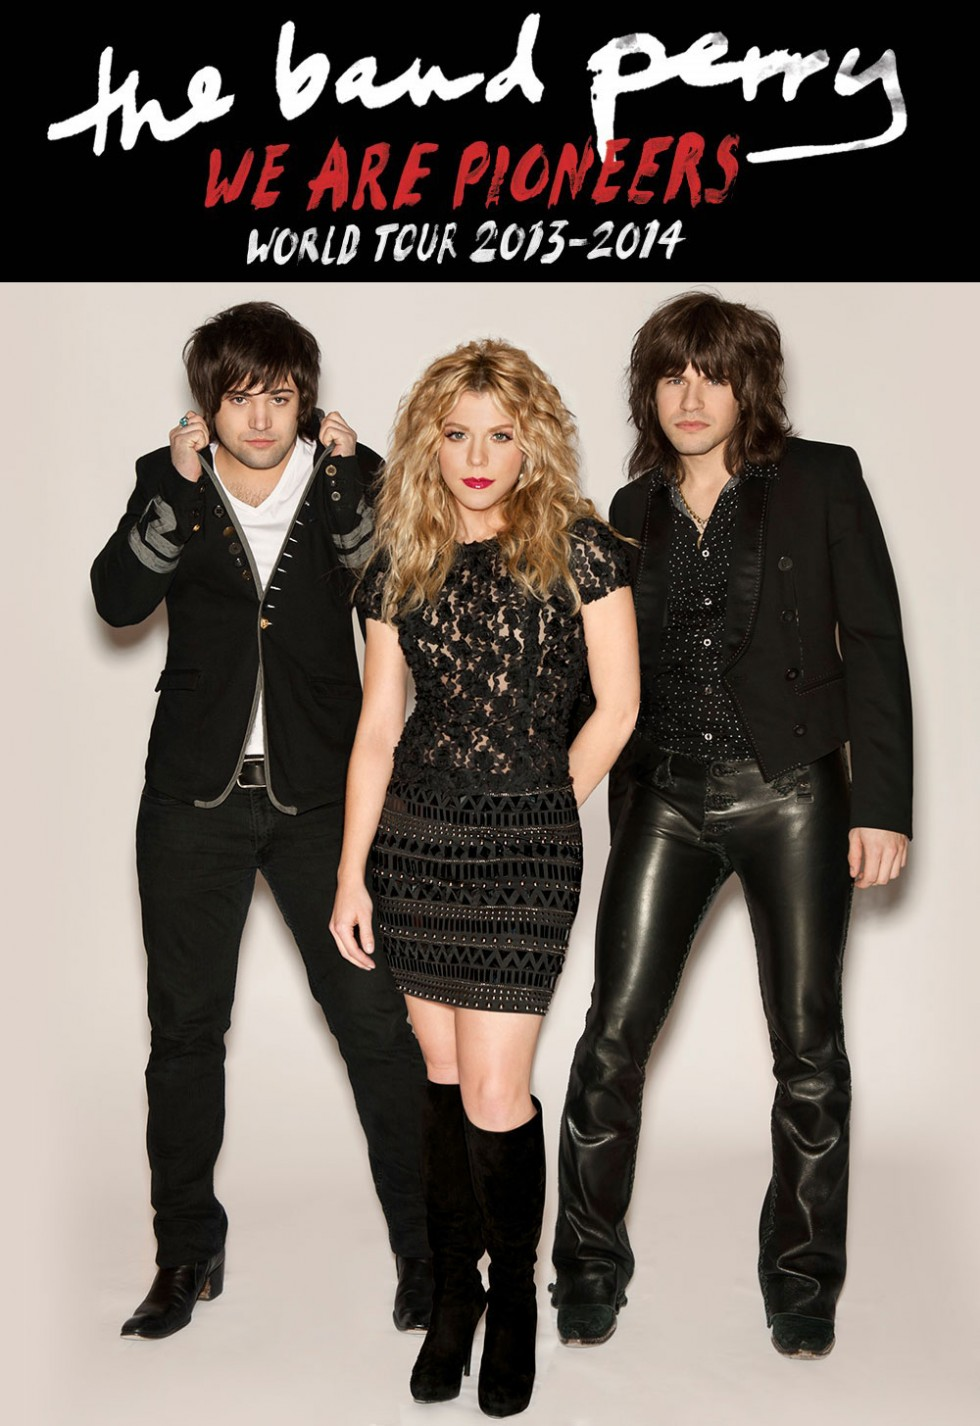 The Band Perry We Are Pioneers Tour 2014